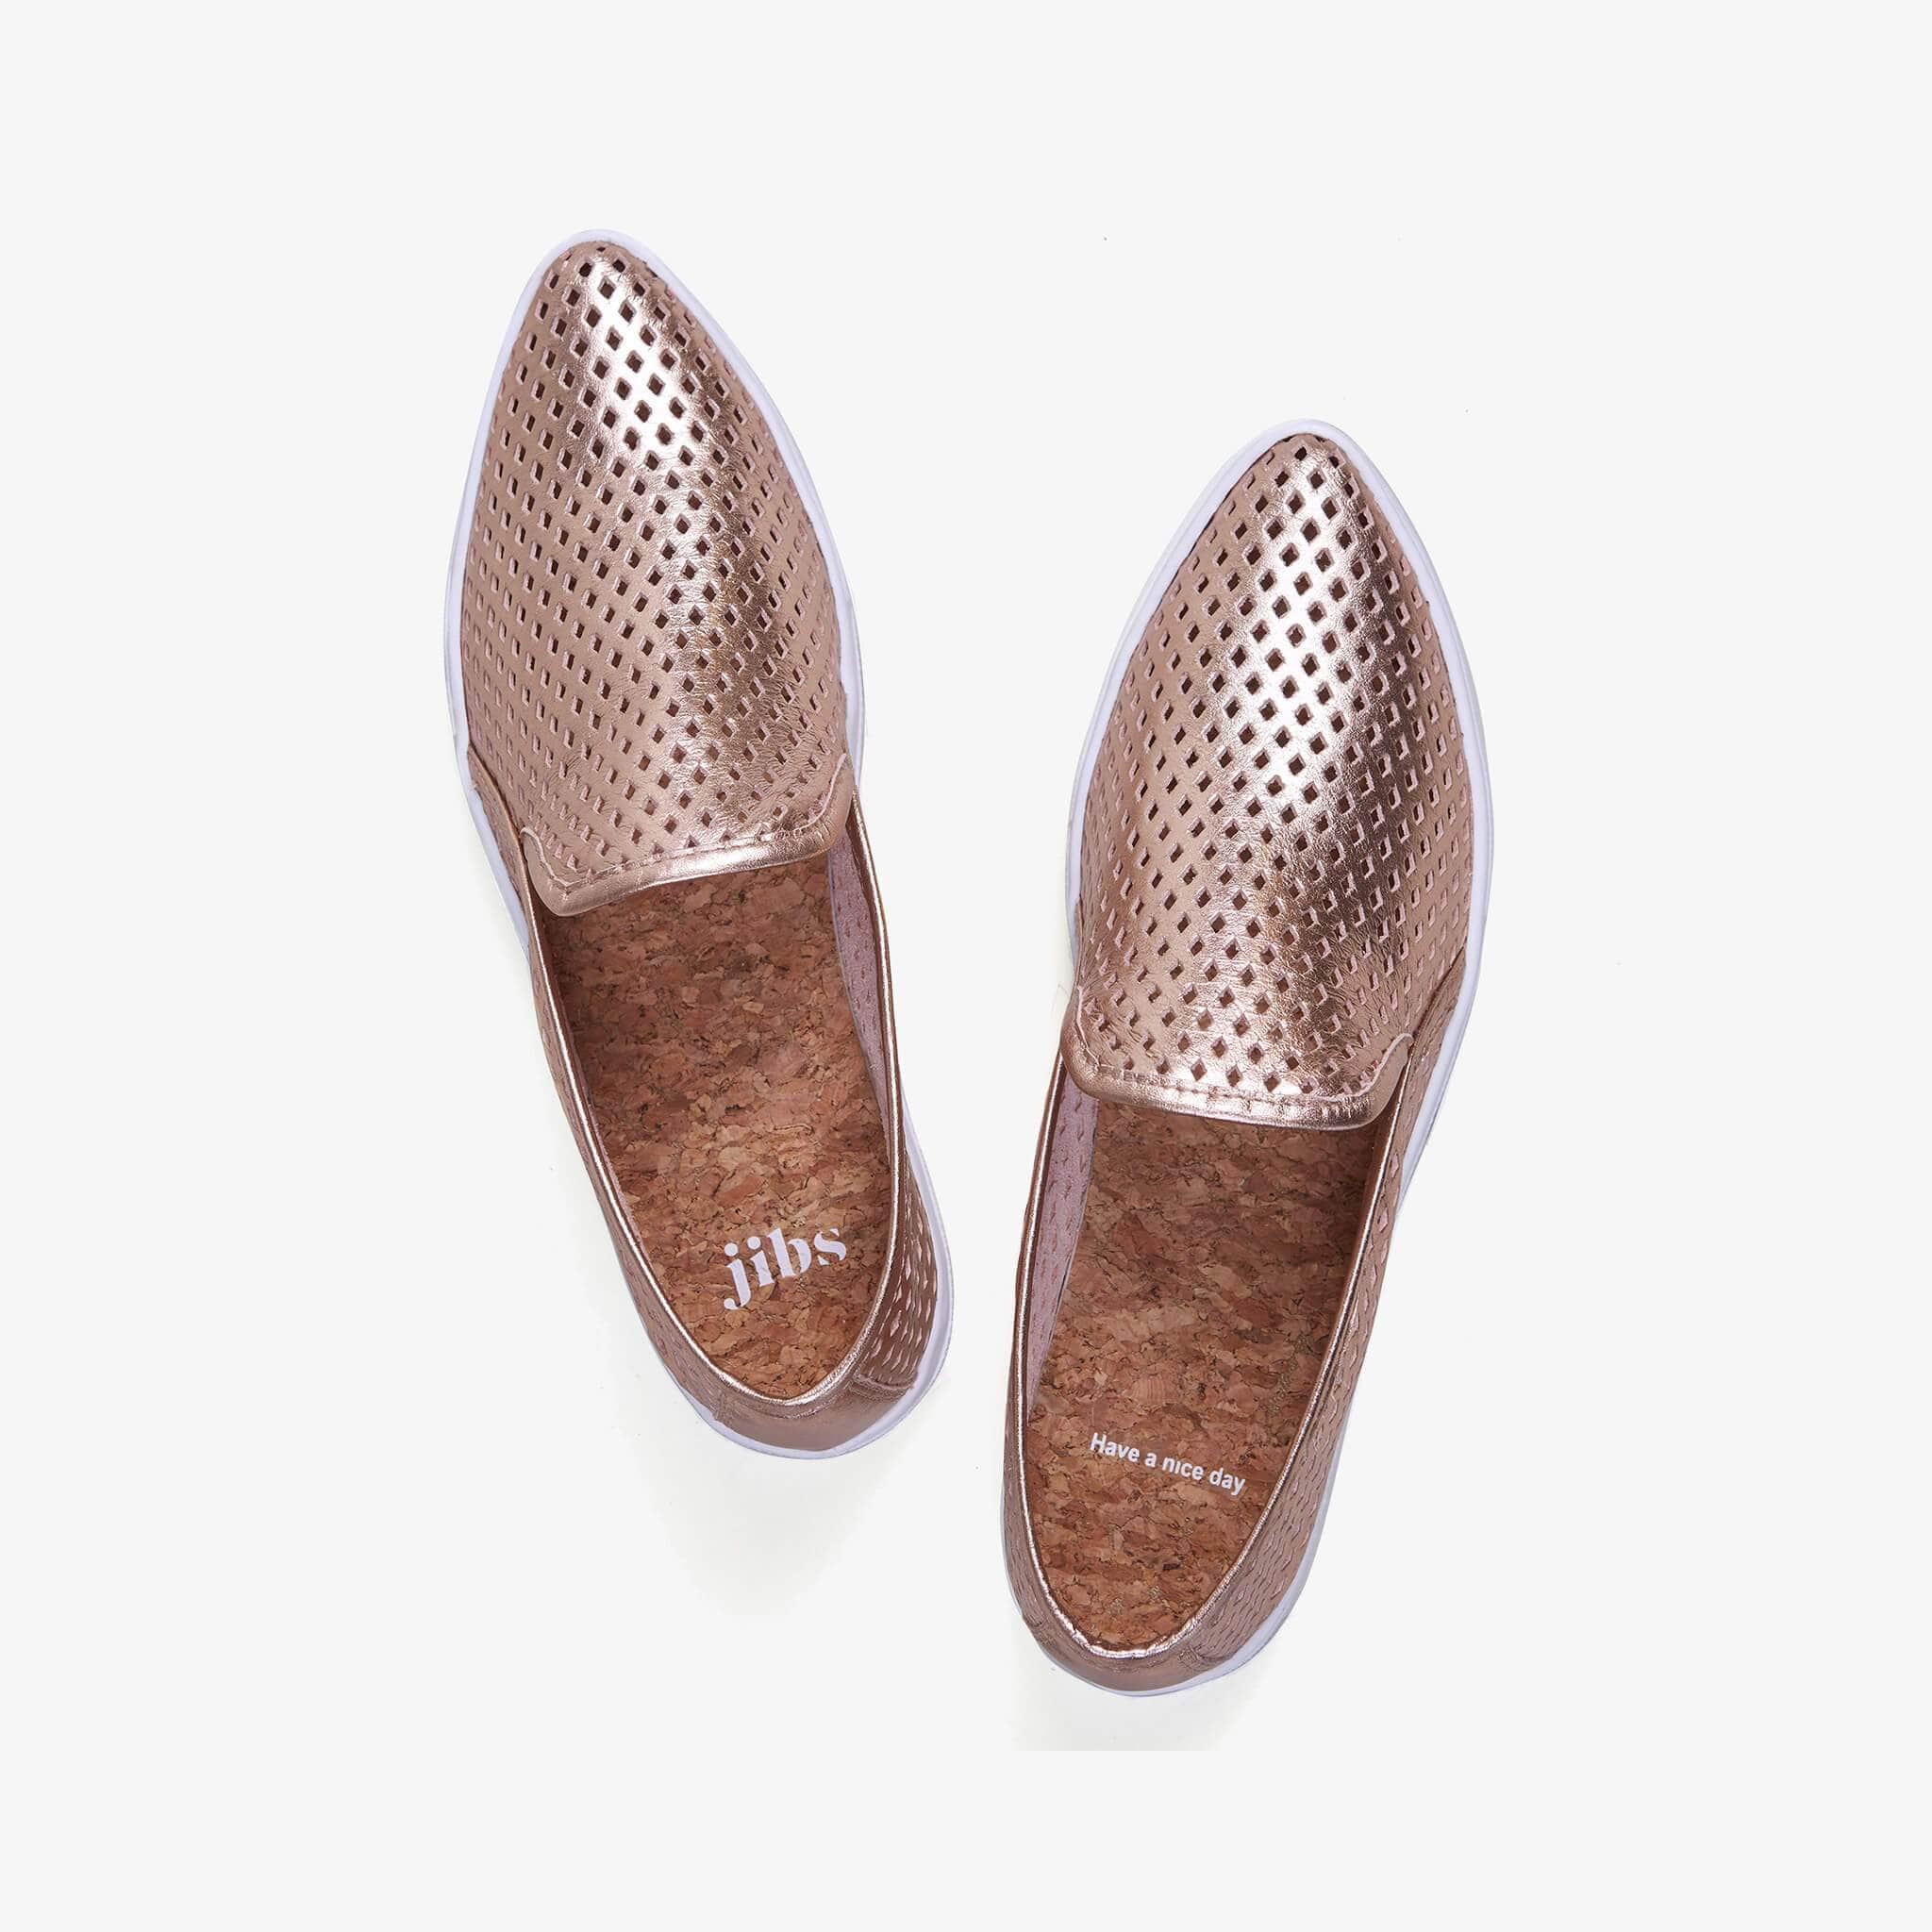 Jibs Slim Rose Gold Slip On Sneaker Flat Top Have A Nice Day